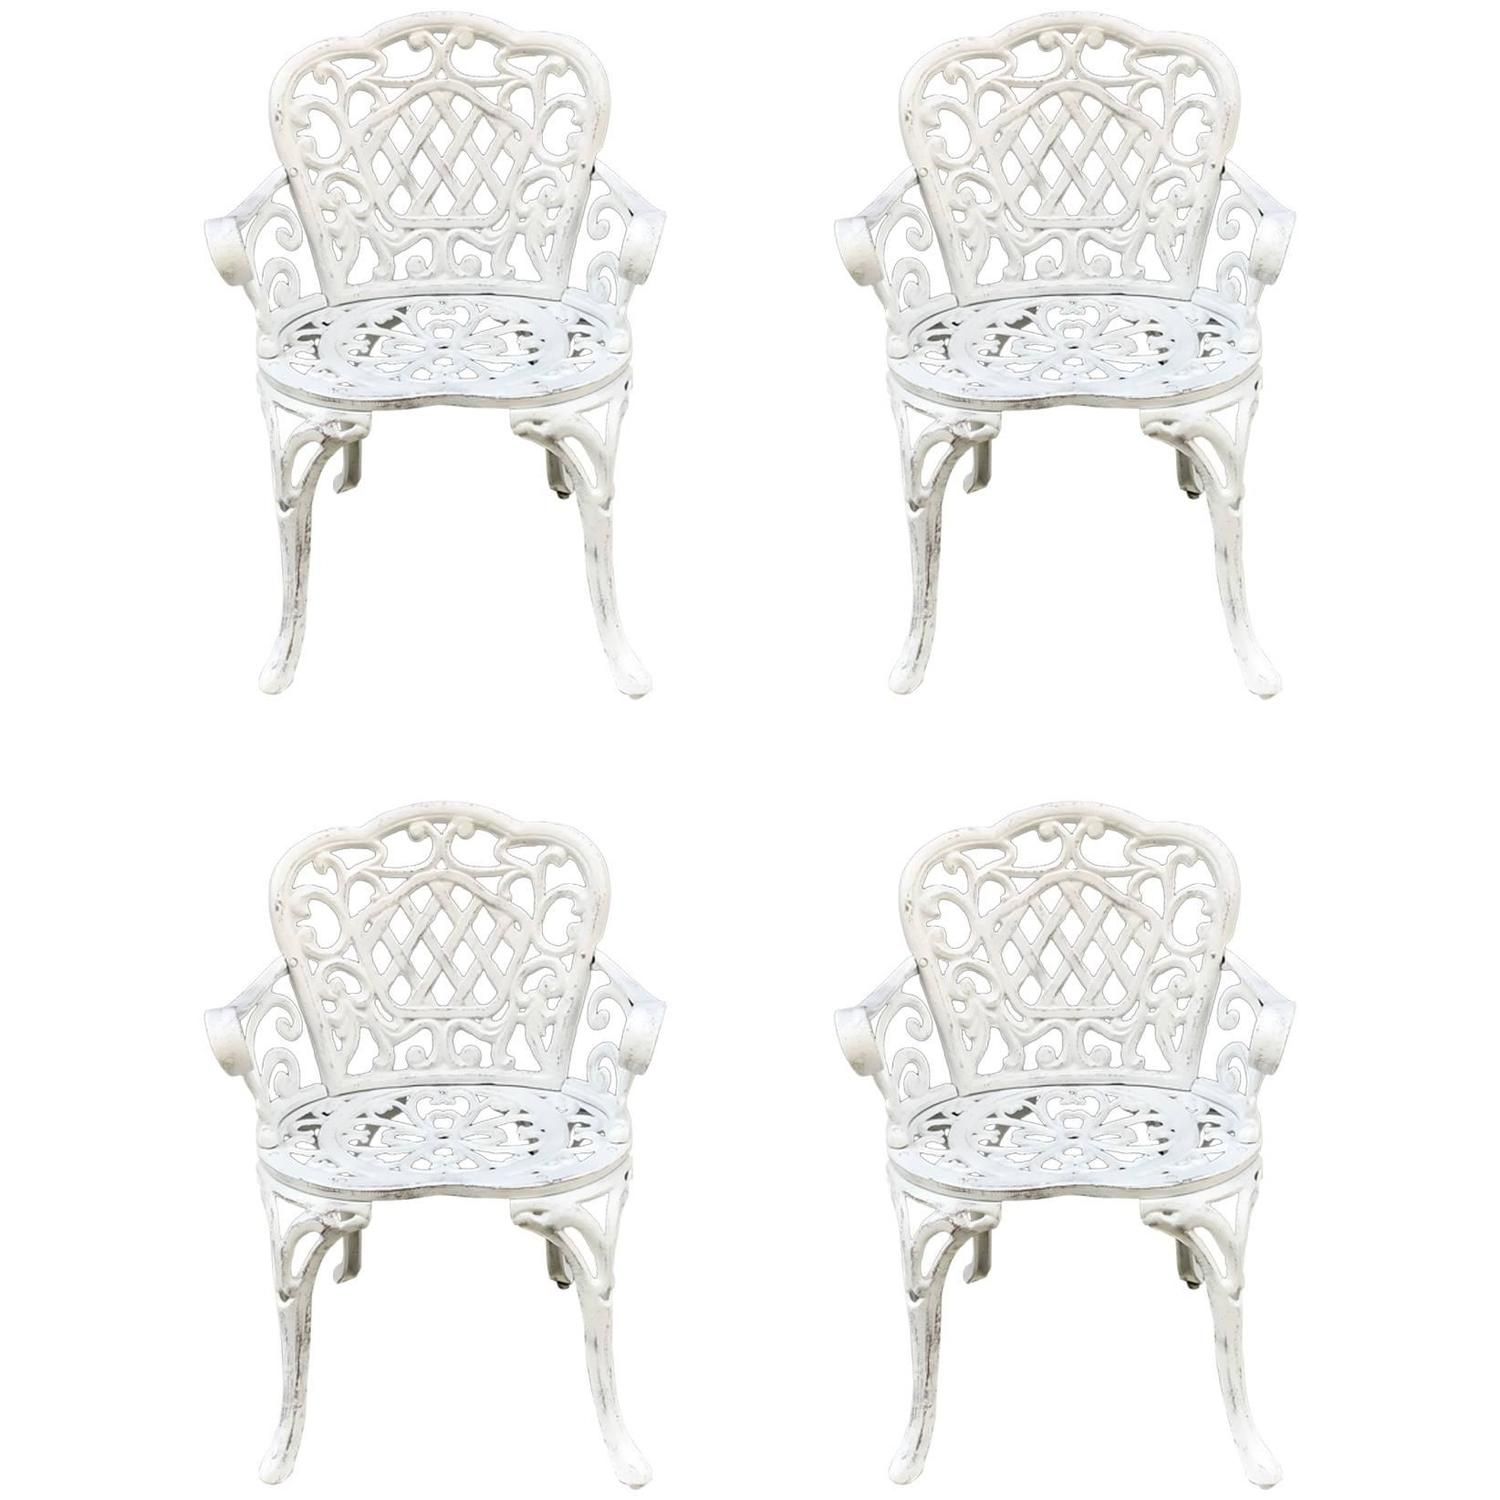 Cast Aluminum Patio Furniture Heart Pattern: Set Of Four Early Cast Iron Garden Chairs For Sale At 1stdibs